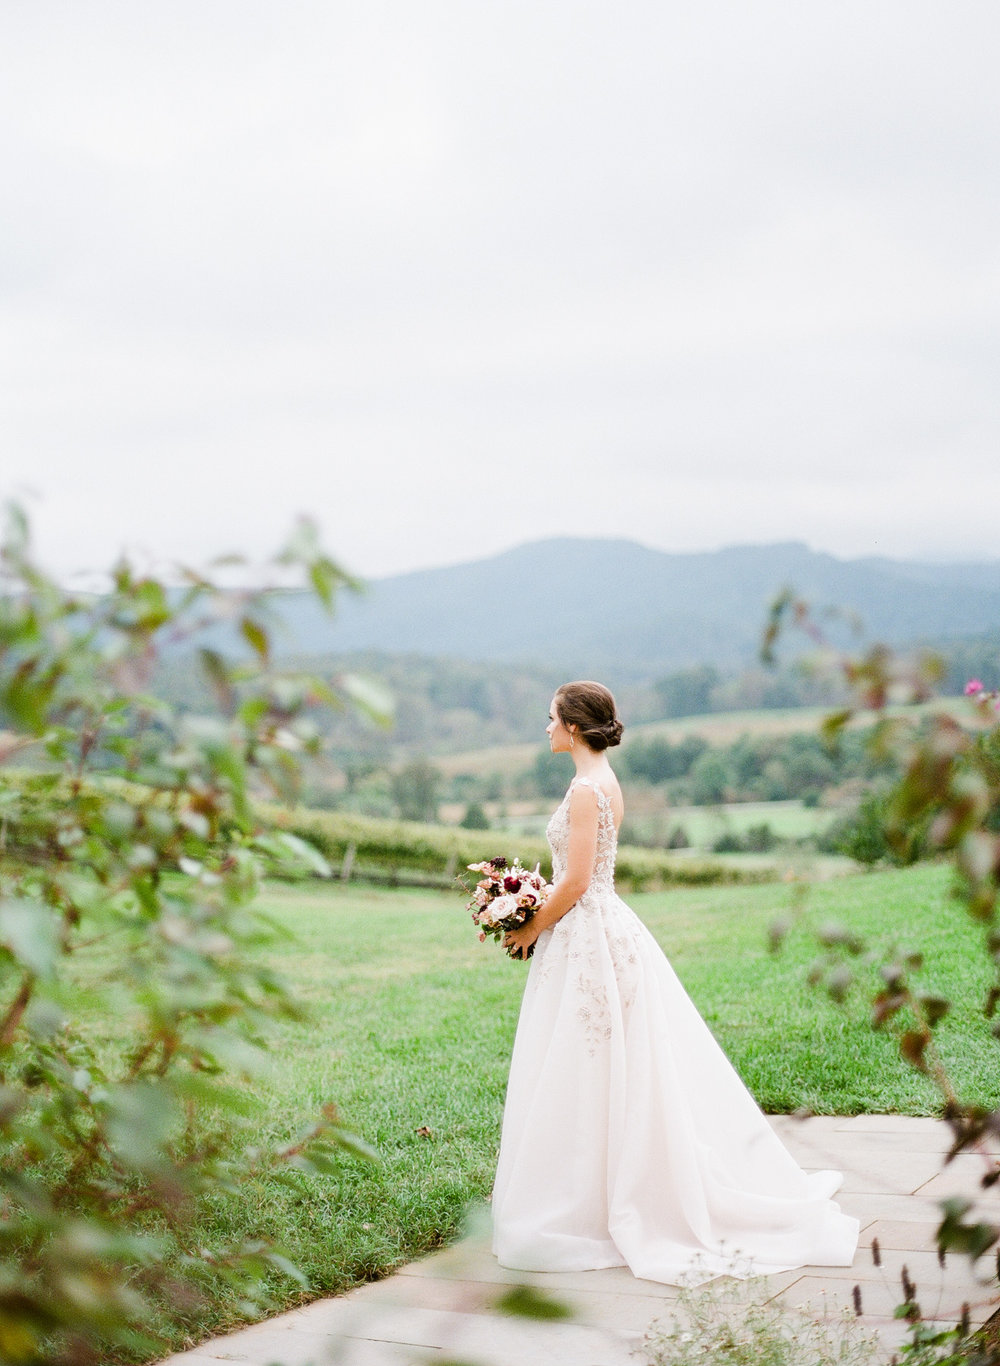 Pippin-Hill-Farm-and-Vinyards-Wedding-Film-Photography-10.jpg